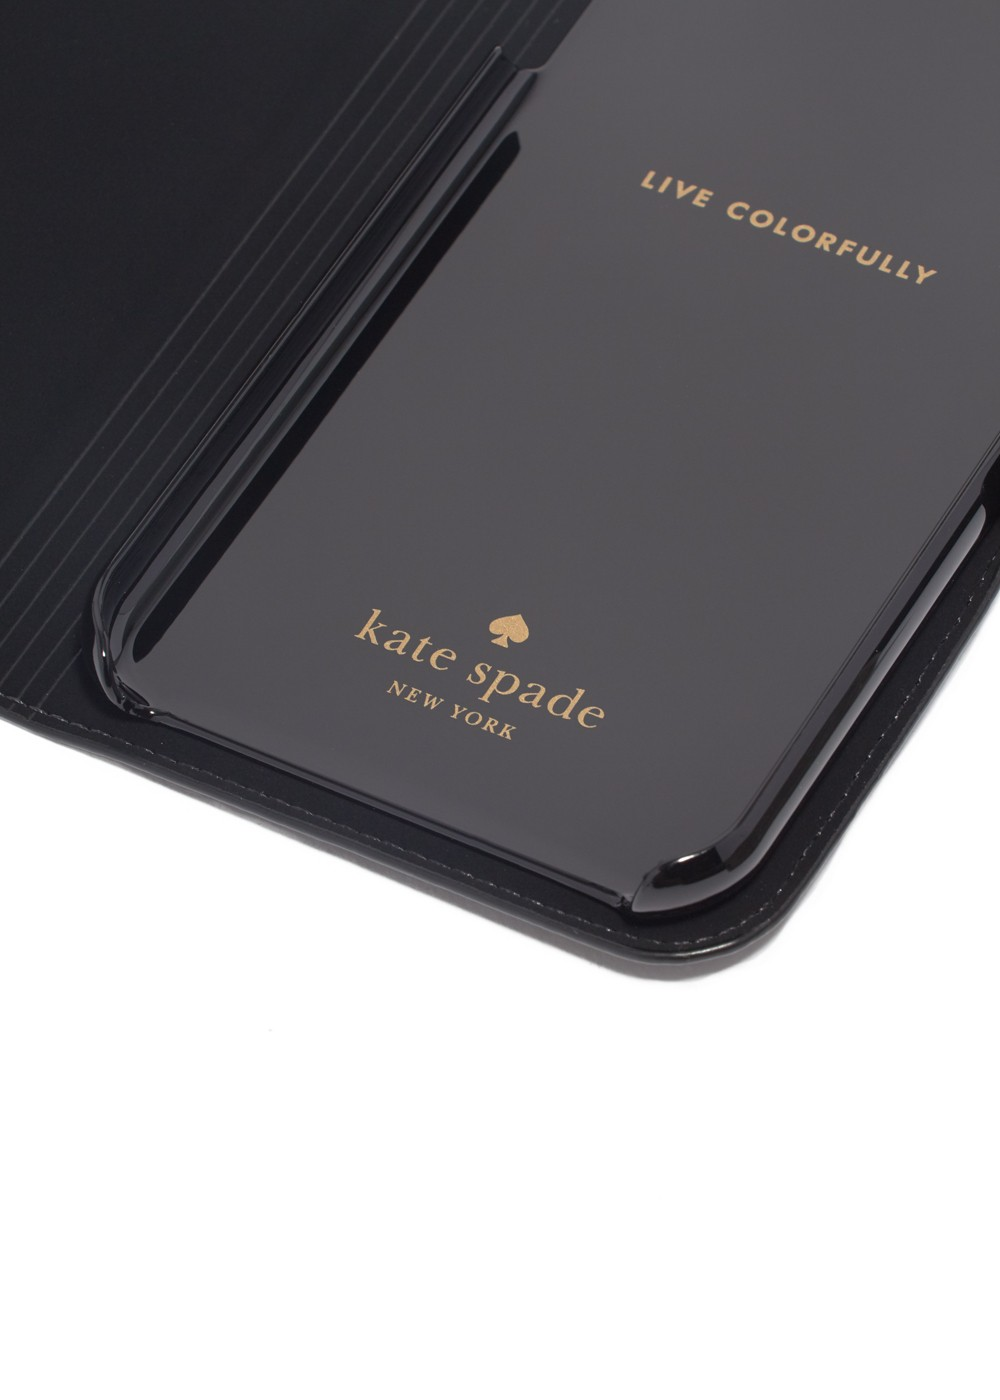 kate spade NEW YORK|ケイトスペードニューヨーク|IPHONE CASES|アイフォンケース|iPhoneX CASE ANTOINE APPLIQUE FOLIO